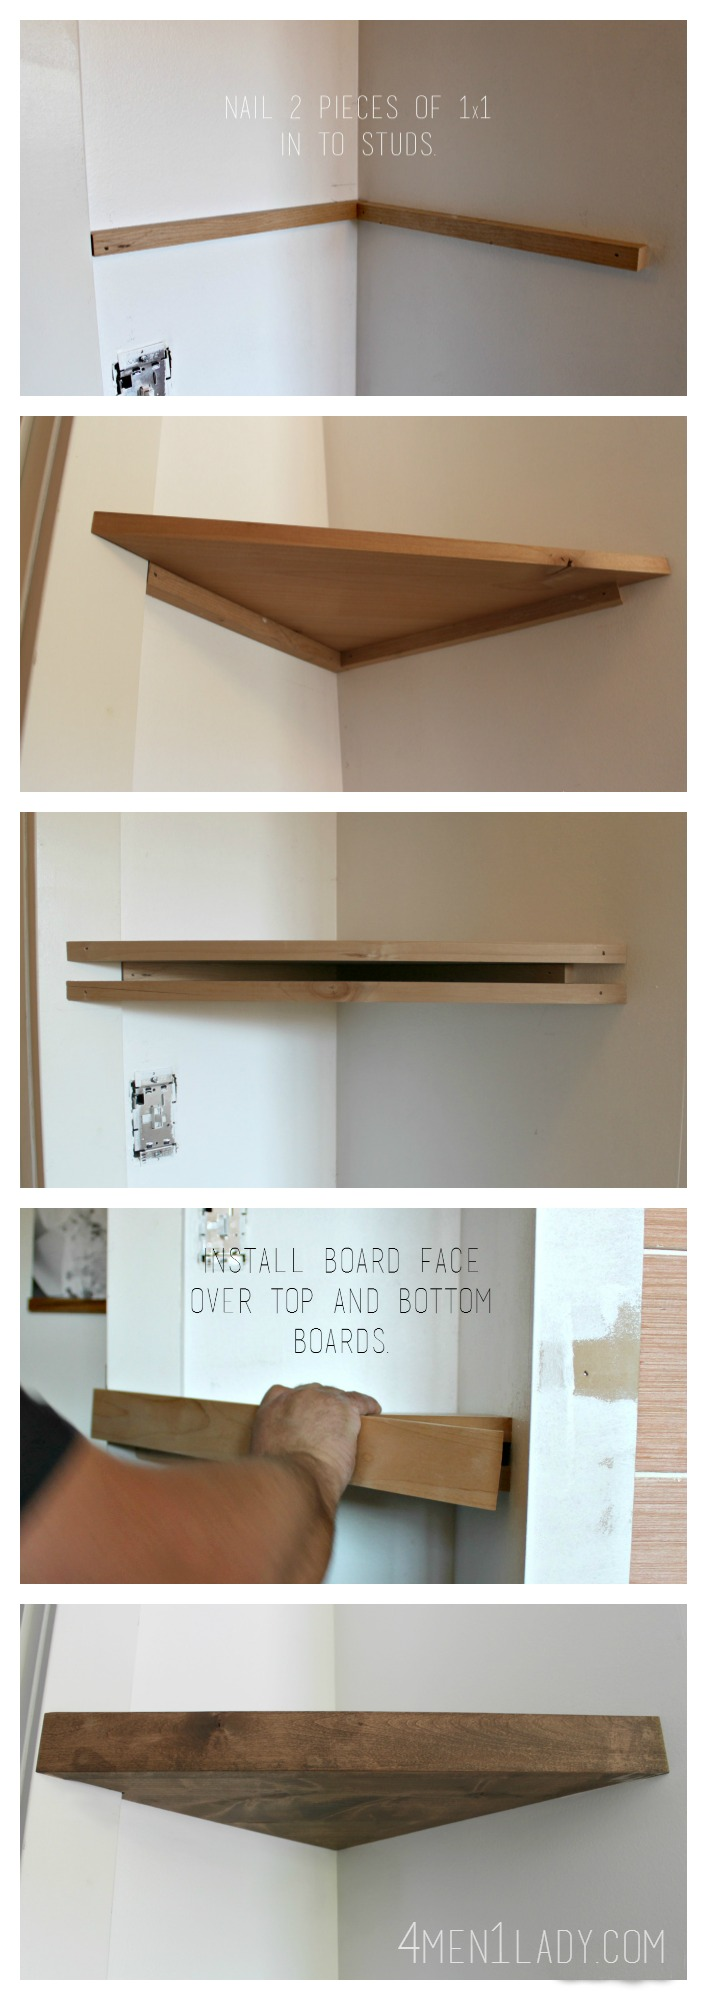 Floating Shelf Ideas: How to Hang Floating Shelfs